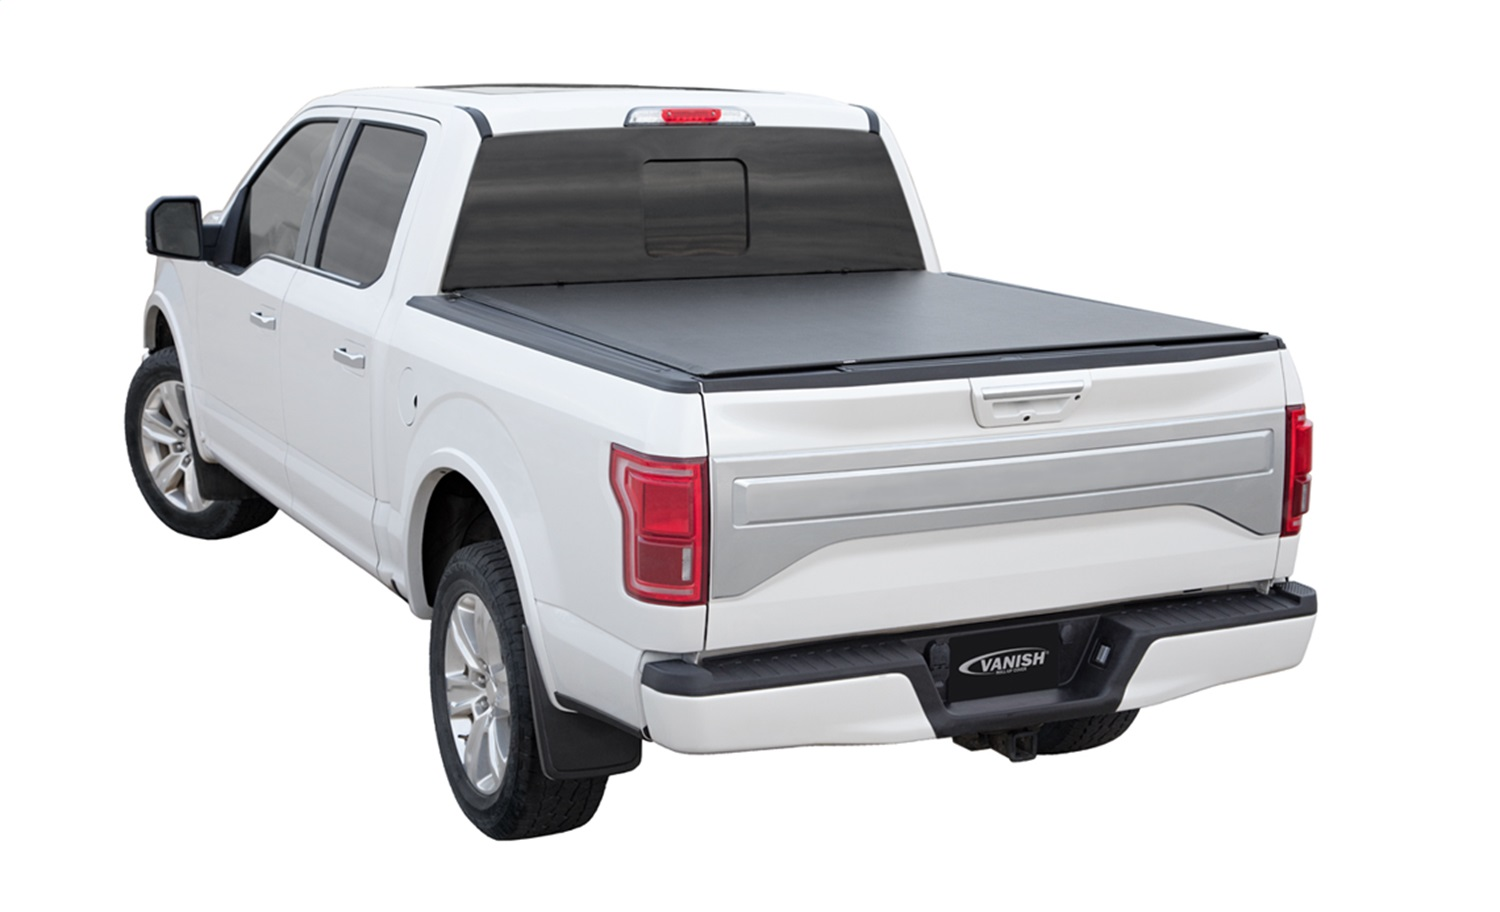 Access Cover 95239 VANISH Roll-Up Cover Fits 07-20 Tundra